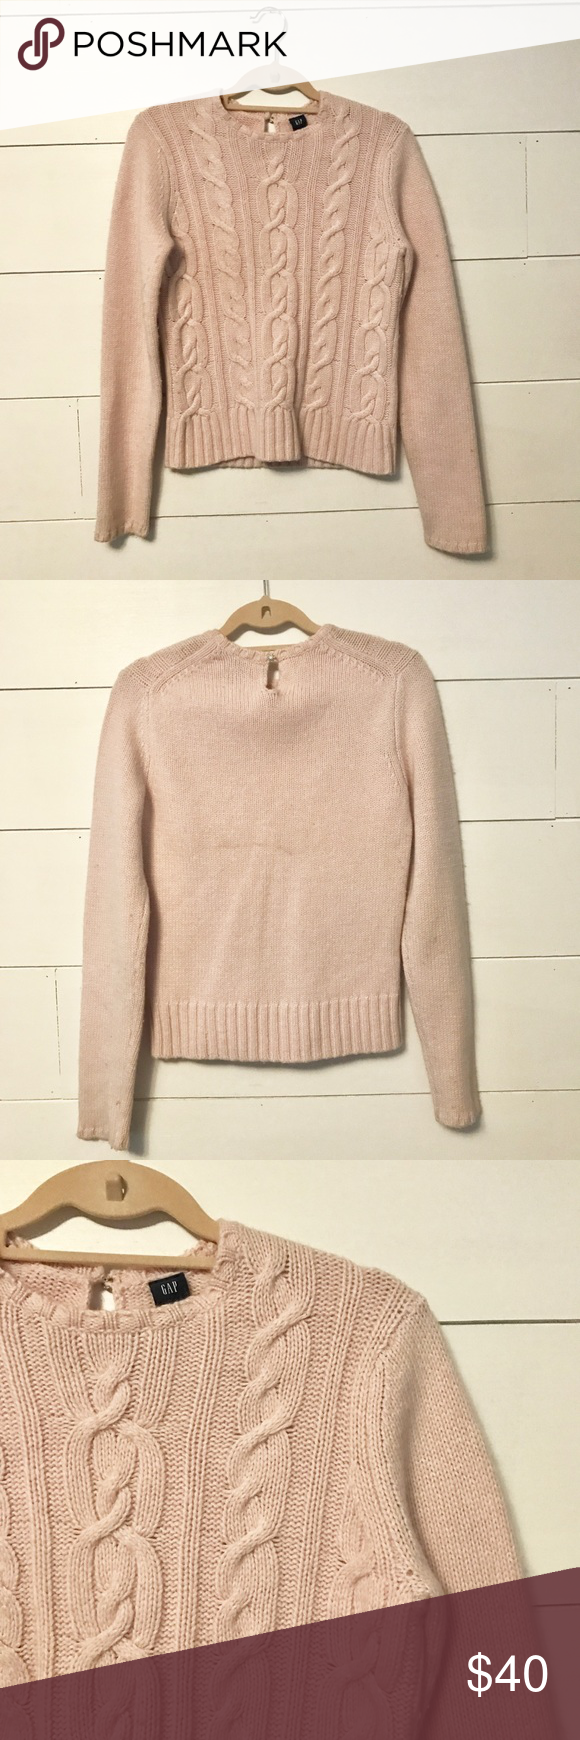 Gap Chunky Cable Knit Sweater | Chunky cable knit sweater, Cable ...